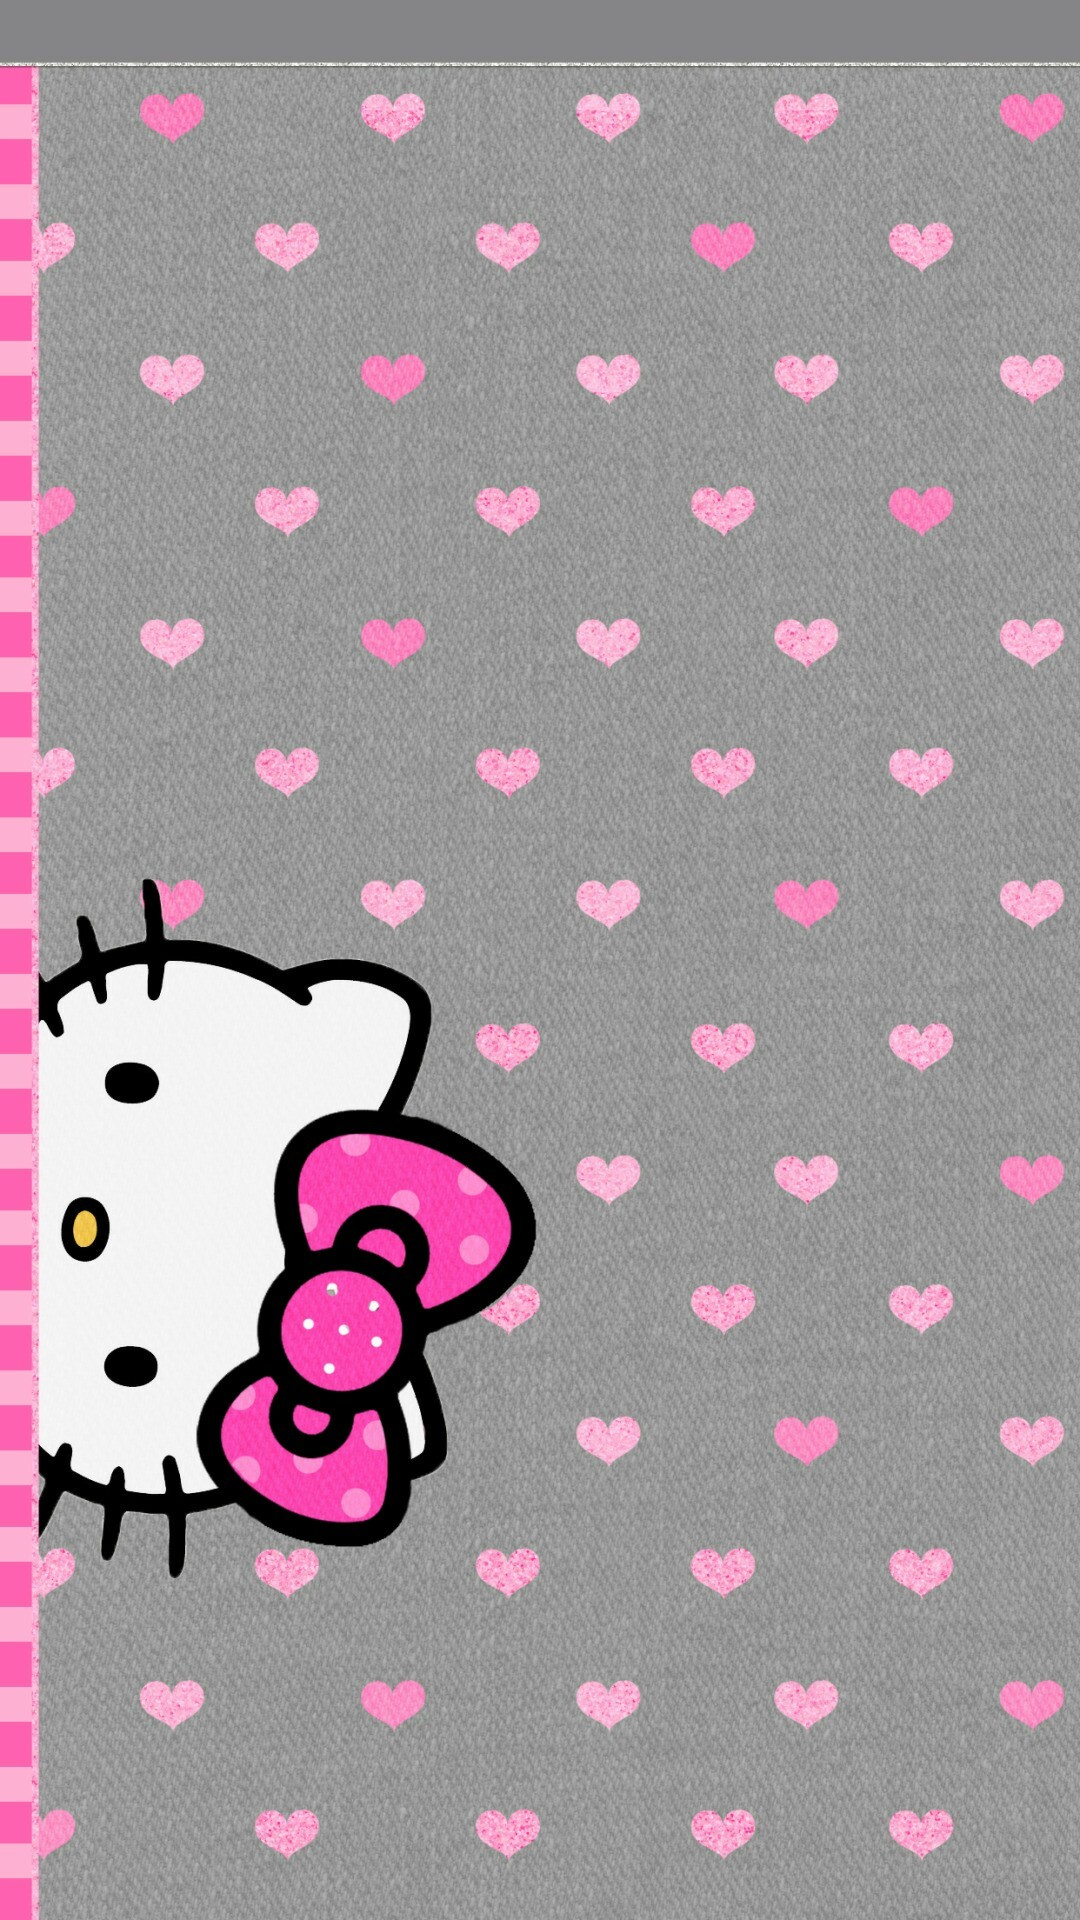 Pink and black hello kitty background 59 pictures purple hello kitty wallpapers wide 2560x1600 2560x1600 purple hello kitty wallpapers wide 92 download 1920x1200 pink bubbles voltagebd Gallery